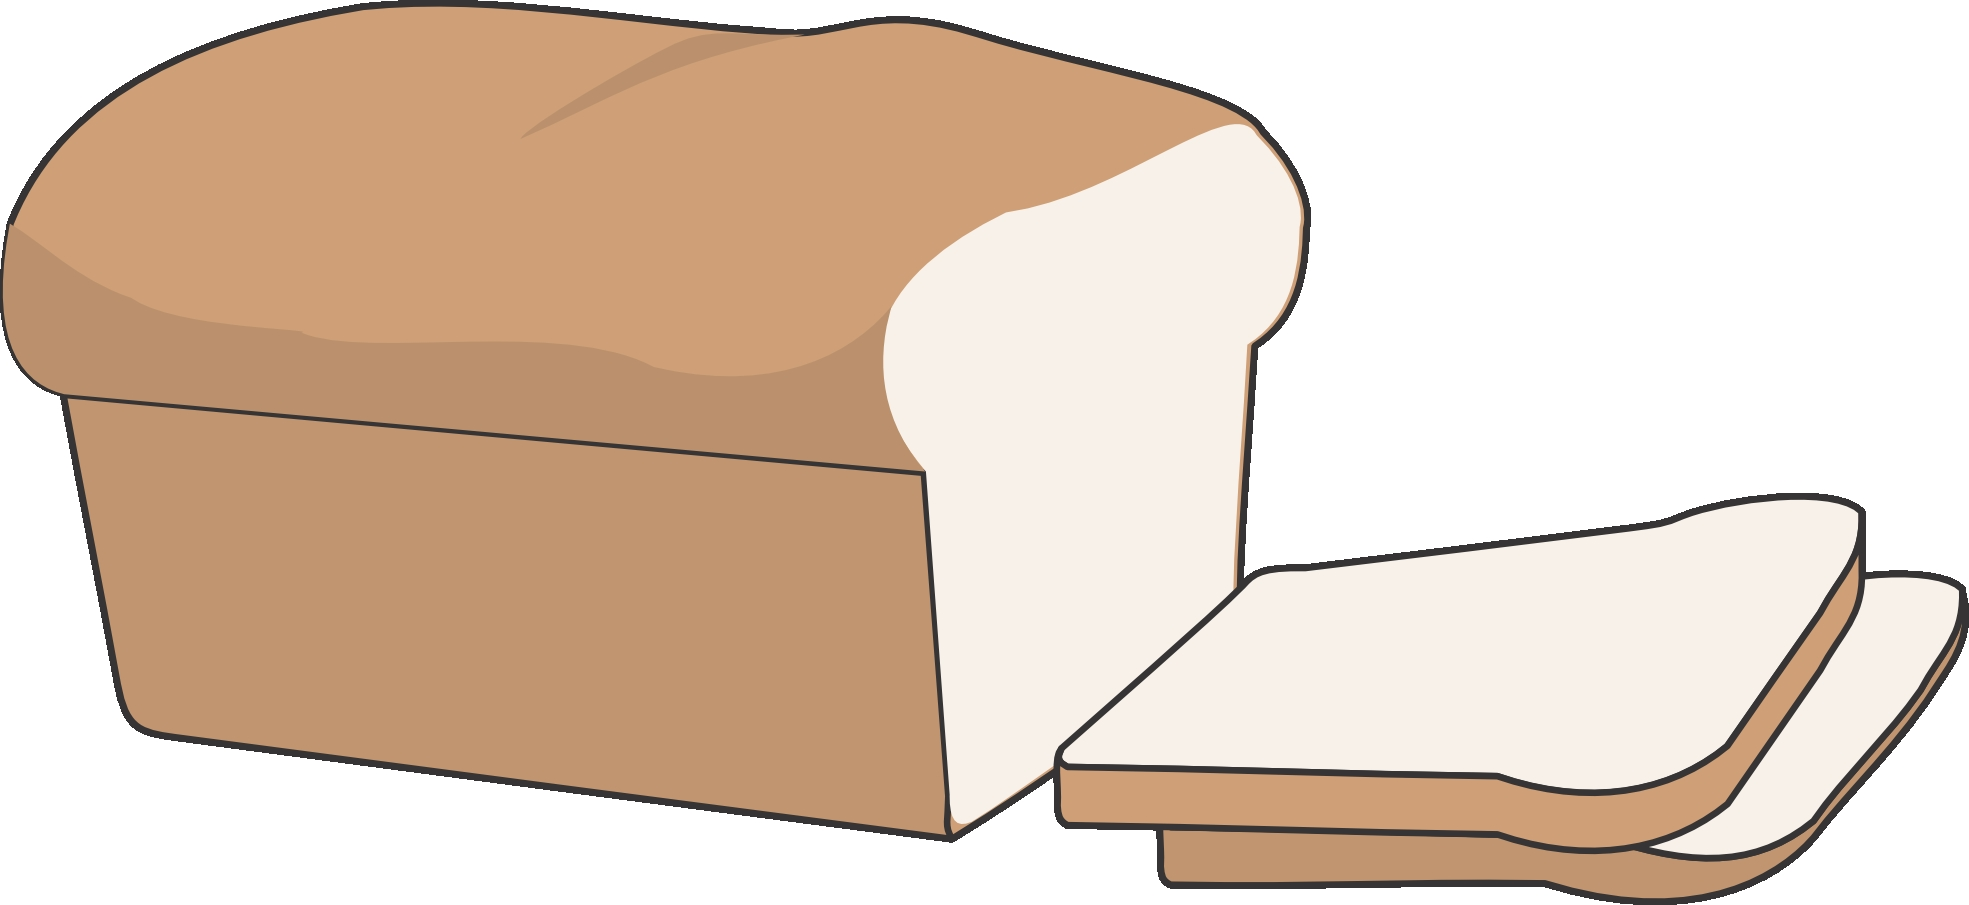 Bread clipart package. Unique loaf of collection